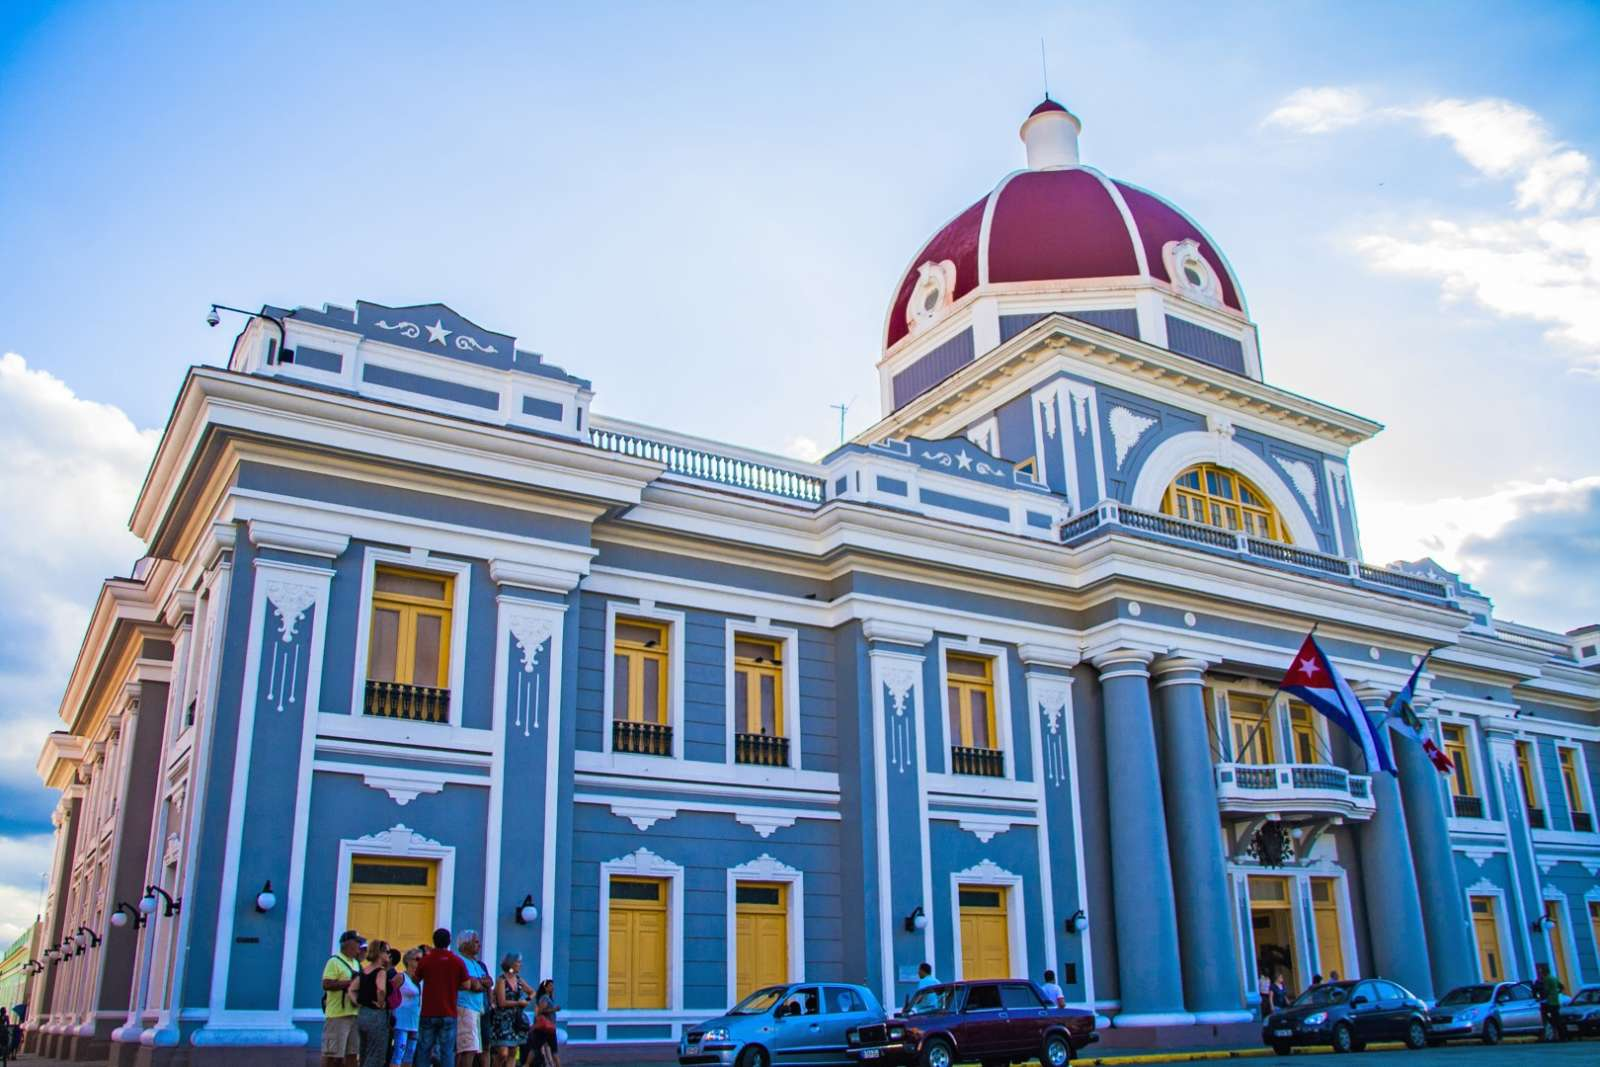 The Governor's Palace in Cienfuegos